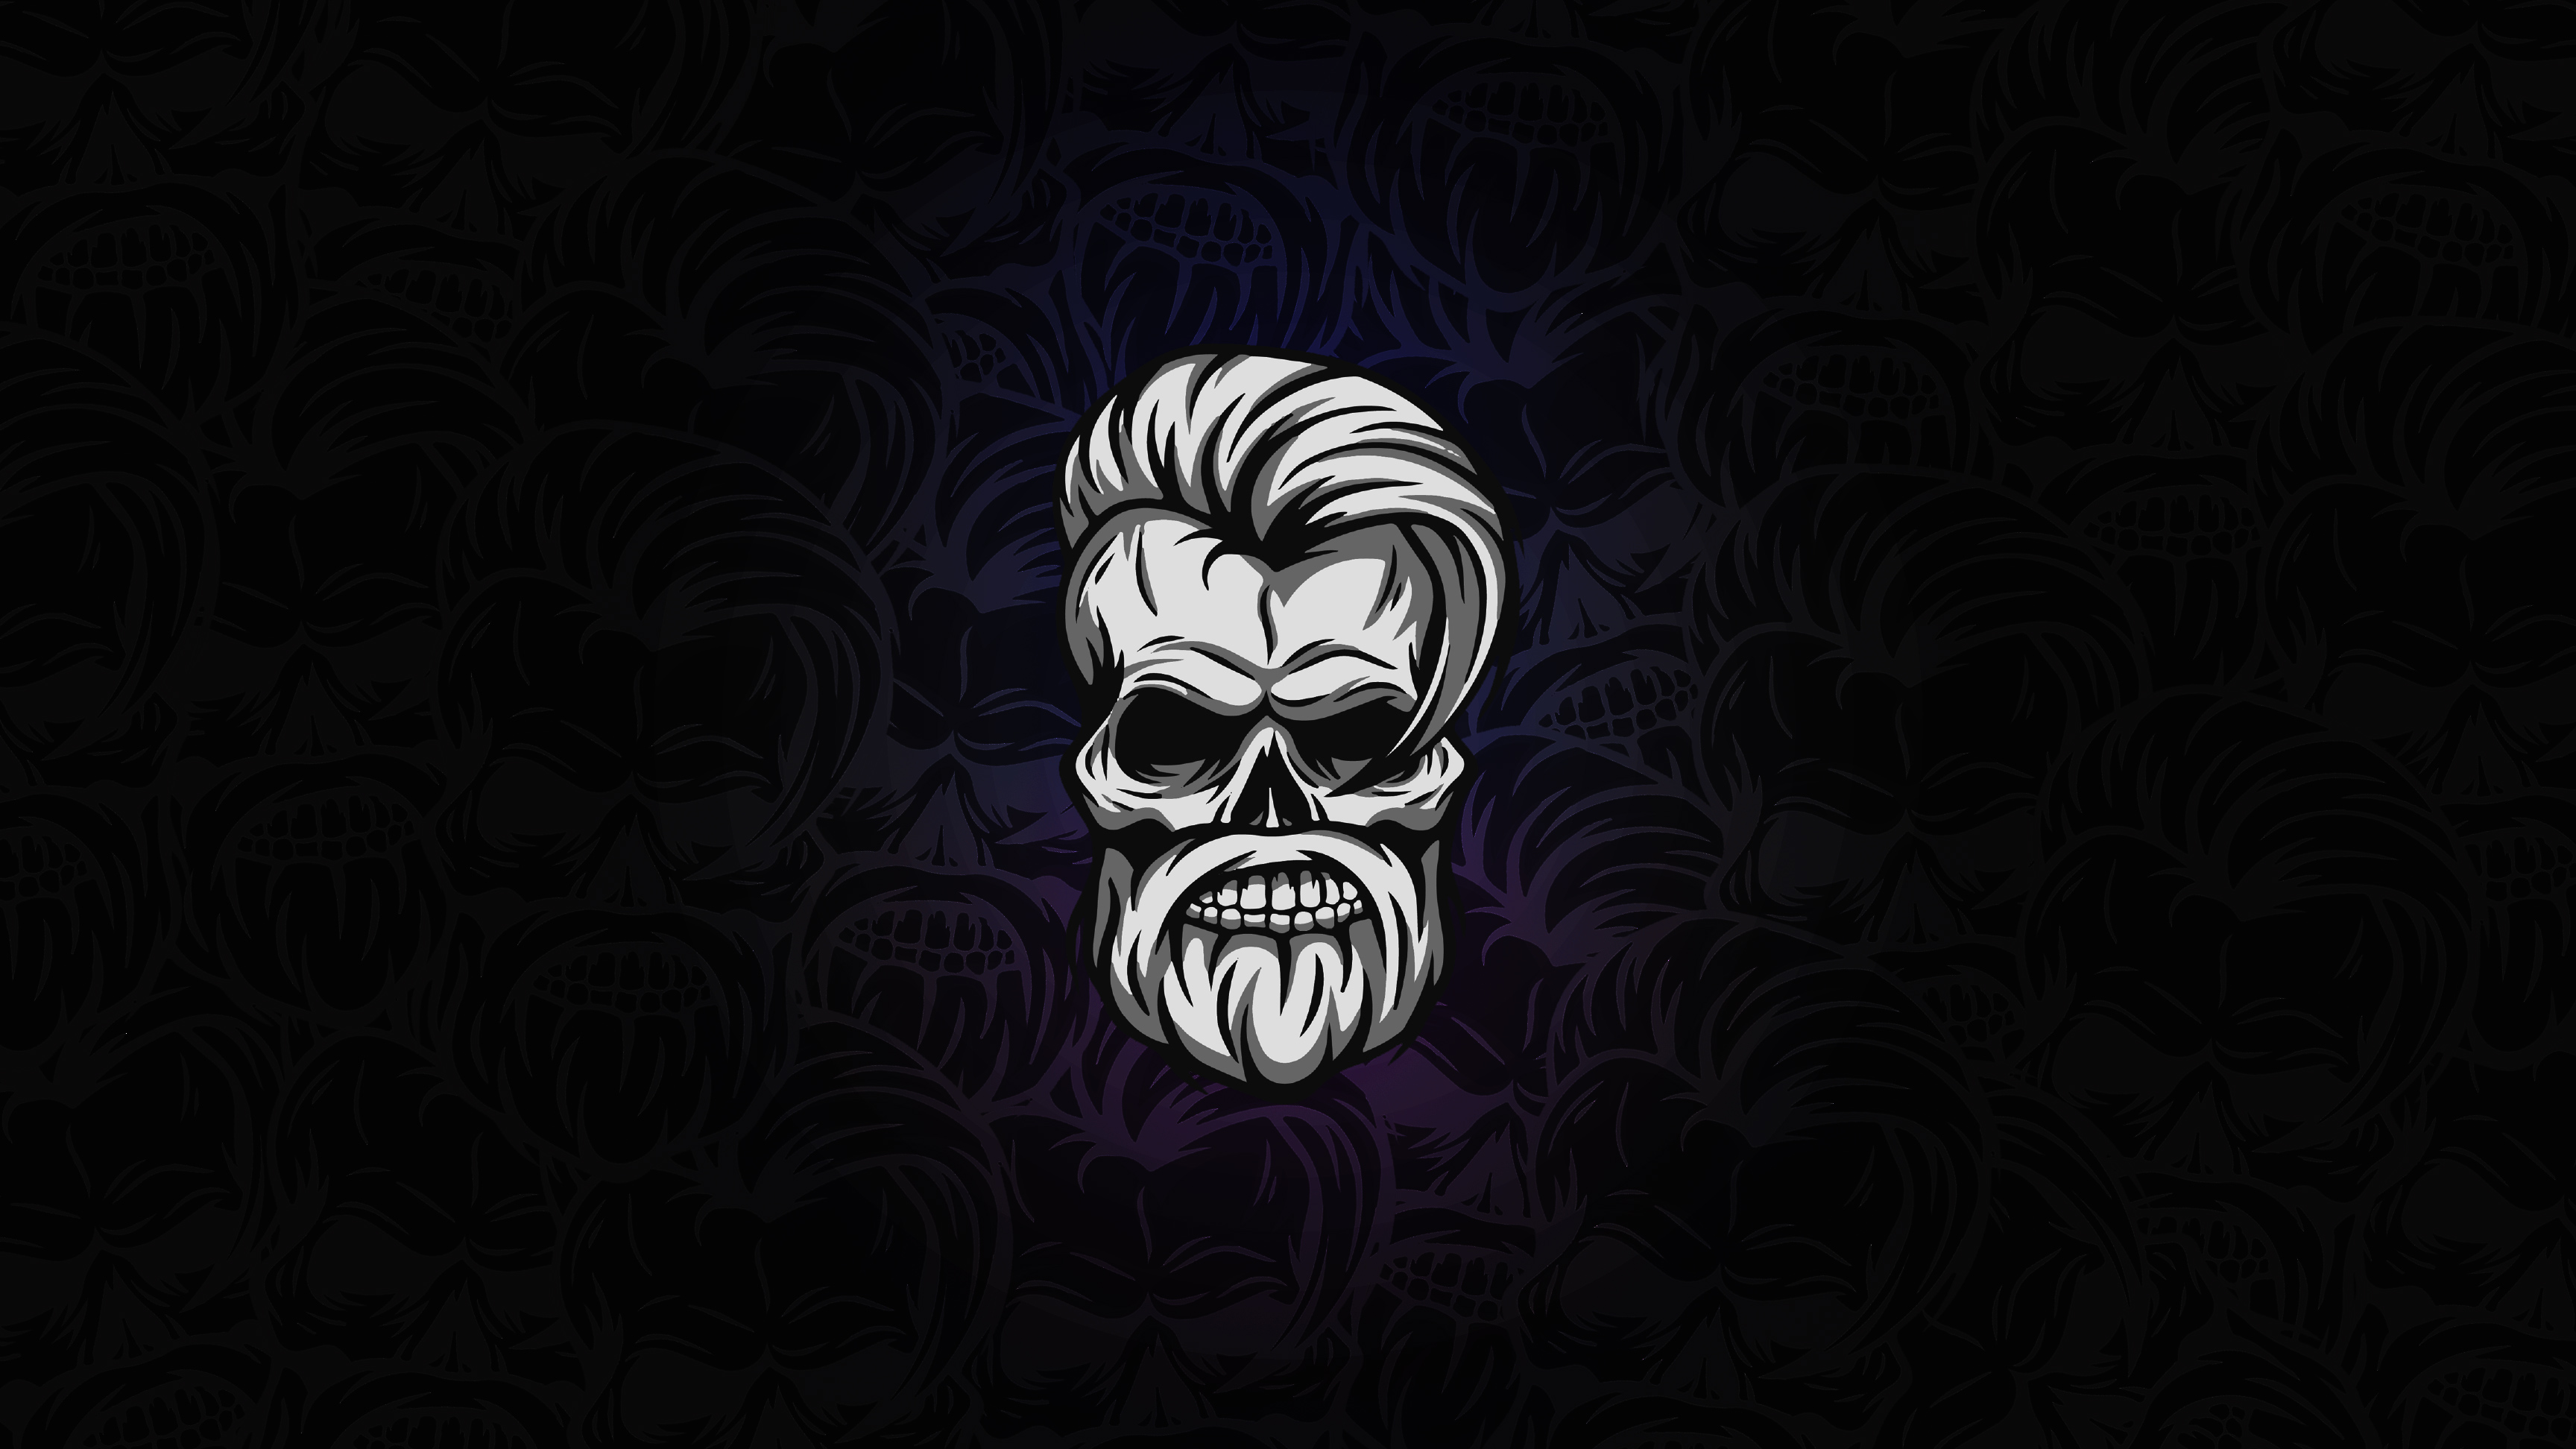 Beard Skull Dark 4k Hd Artist 4k Wallpapers Images Backgrounds